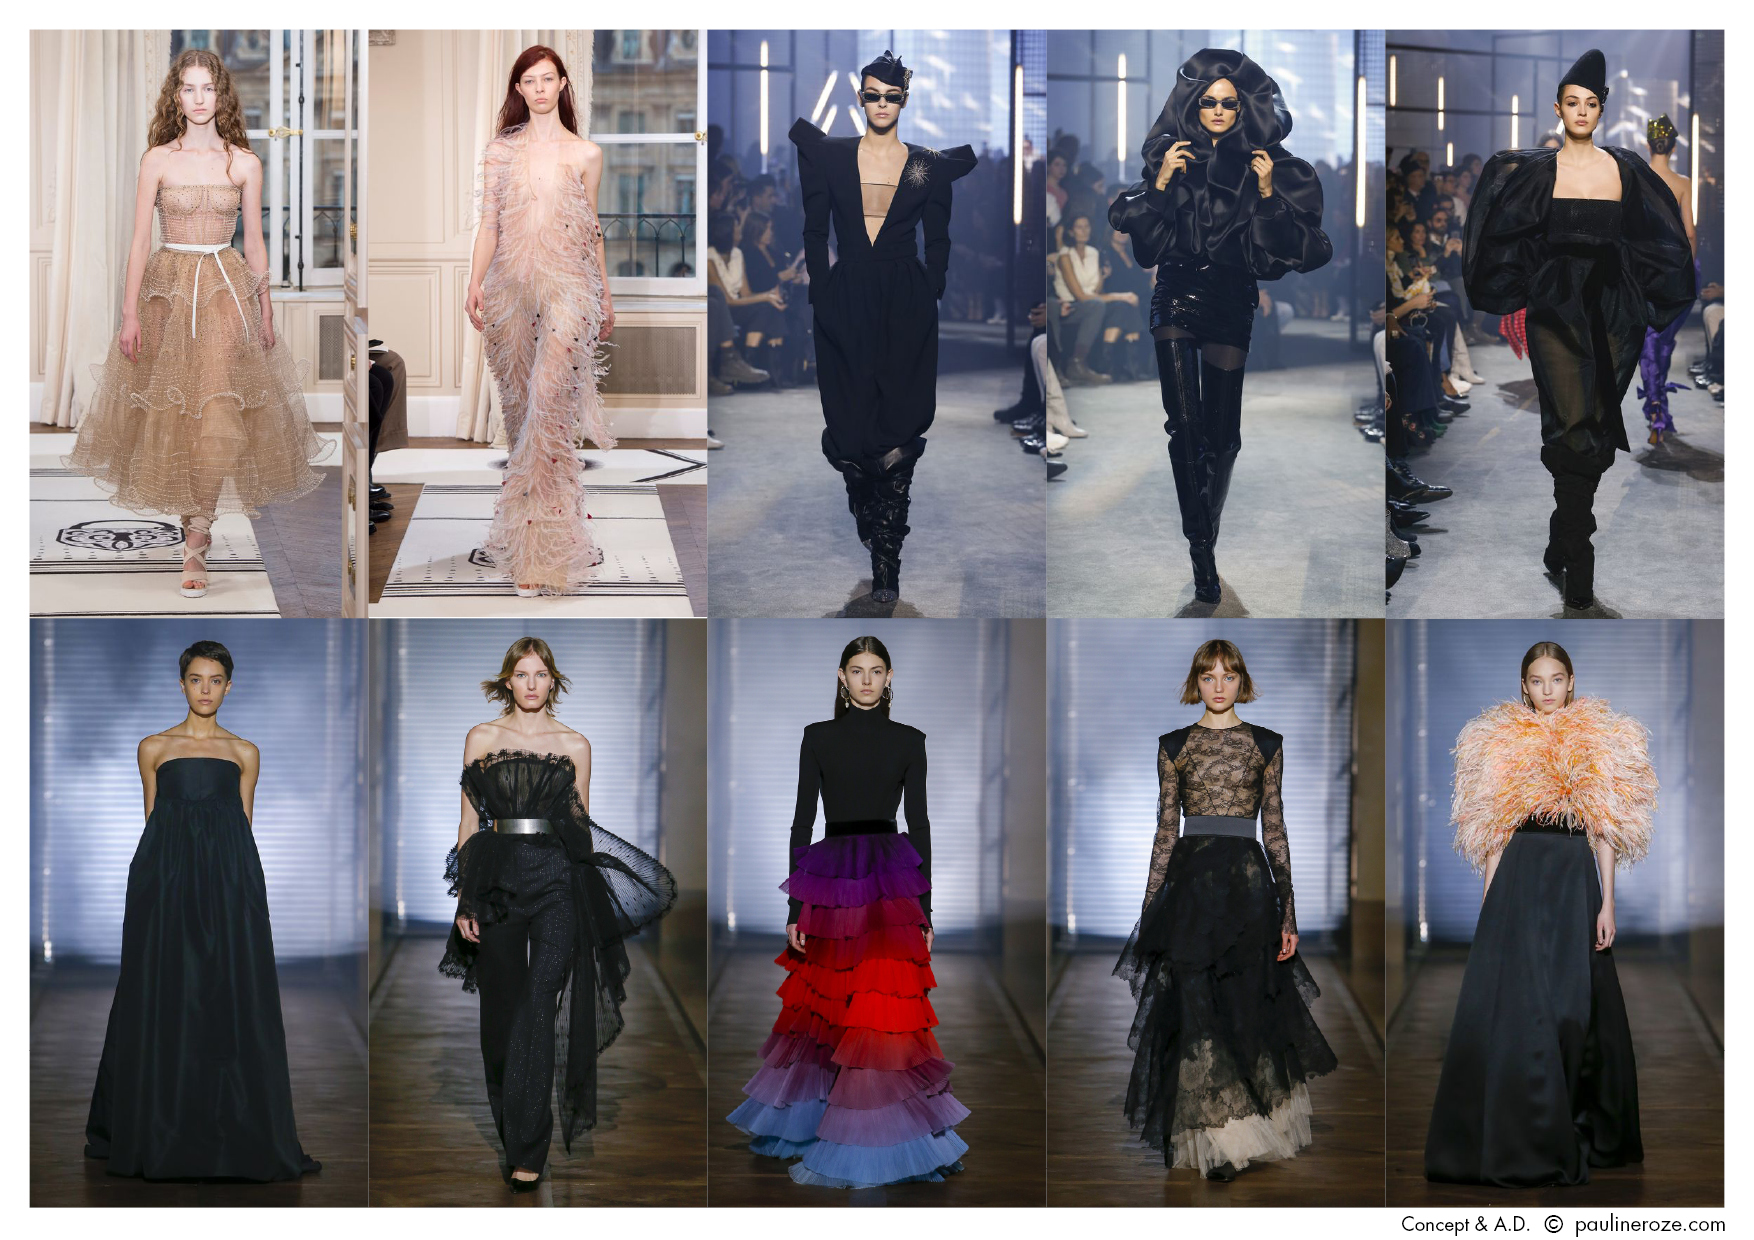 Top row, left, Schiaparelli- middle and right, Alexandre Vauthier, Bottom row, all, Givenchy